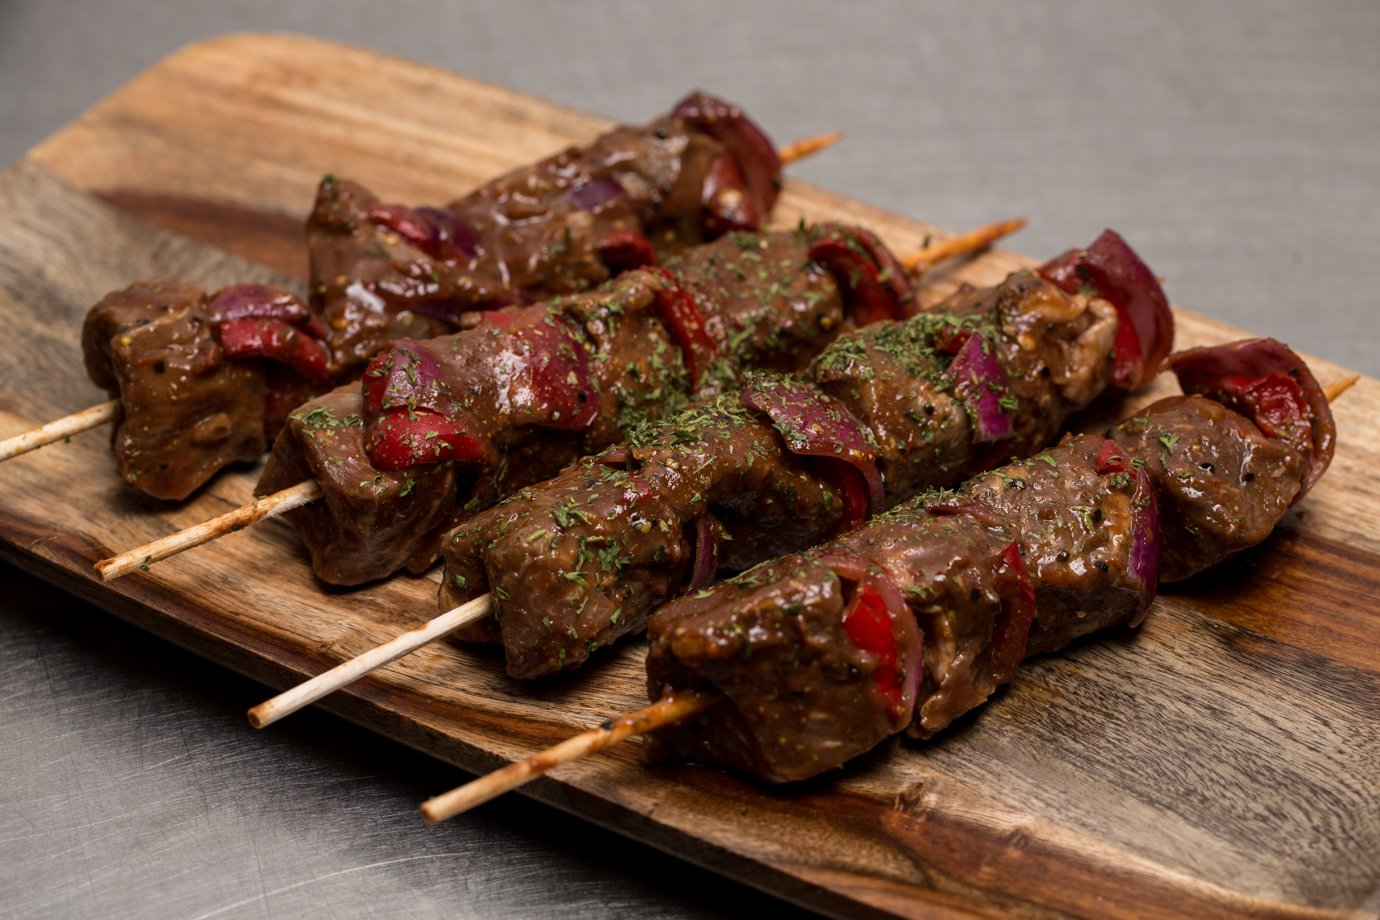 Amazon.com : Ceriello Fine Foods, Filet Mignon Kabob in Ceriello BBQ Sauce, 4 pieces, 26 oz : Grocery & Gourmet Food